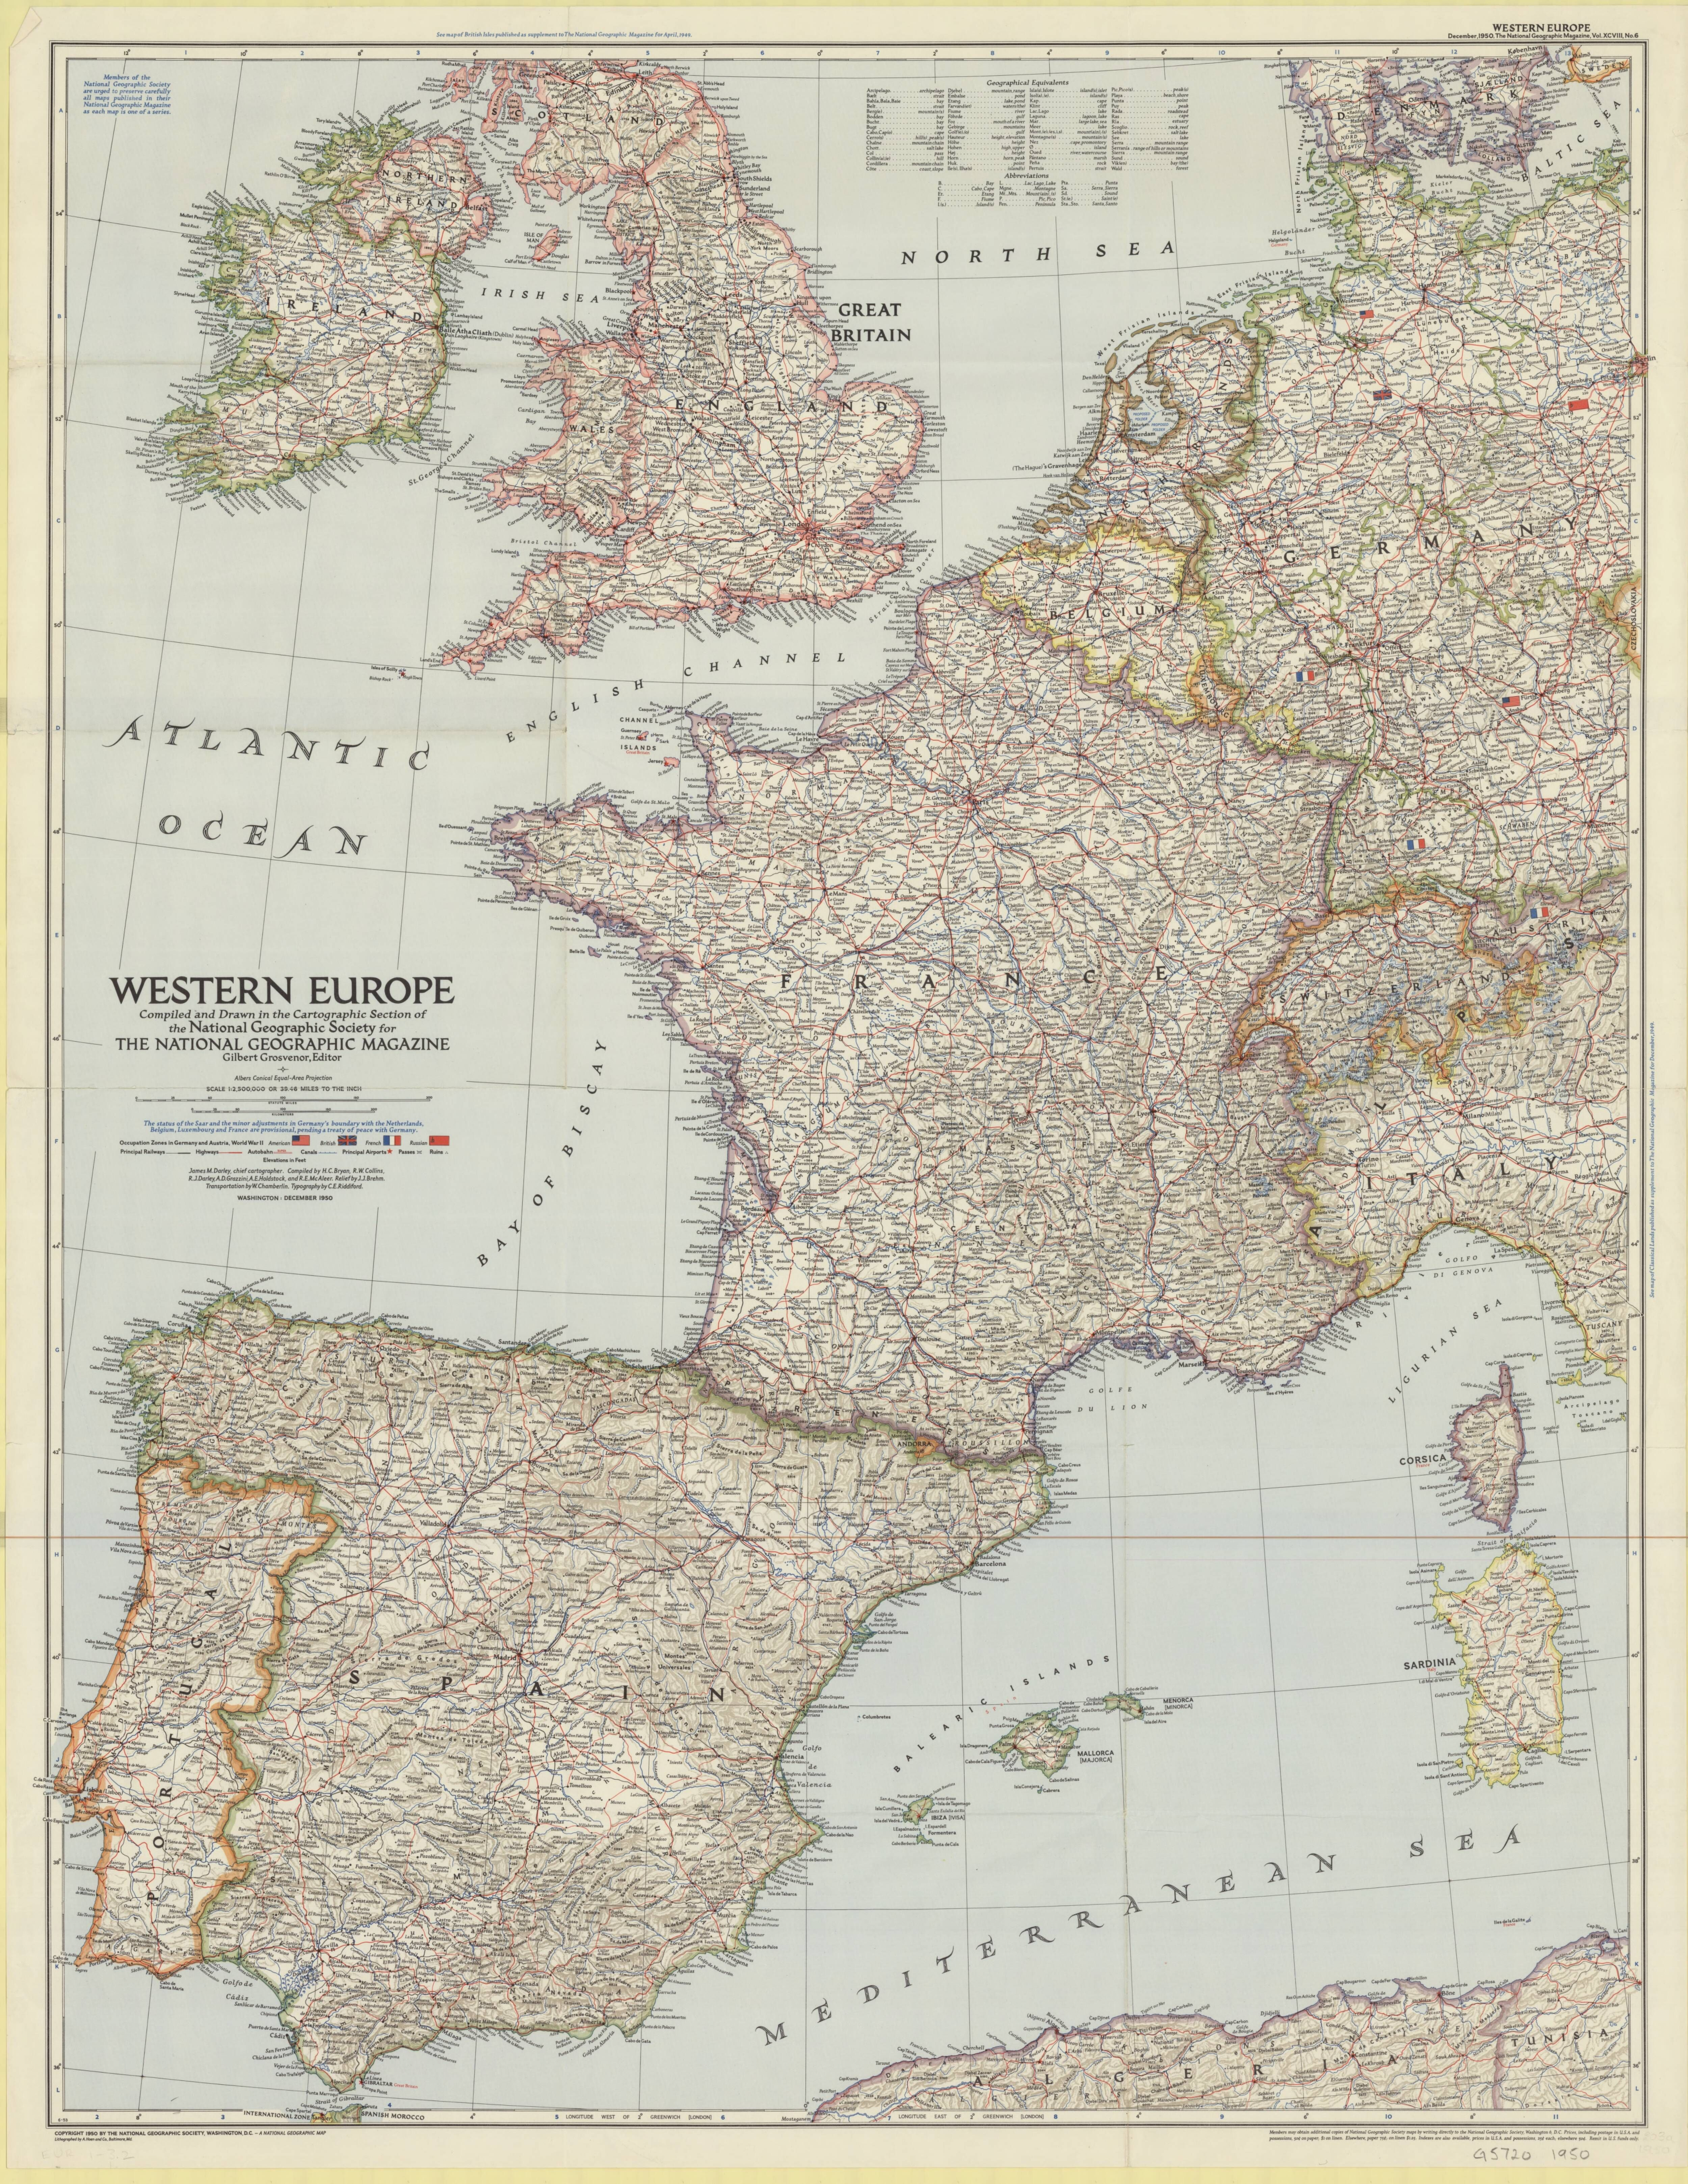 1950 map of western europe showing occupation zones in germany and 1950 map of western europe showing occupation zones in germany and austria in world war ii gumiabroncs Choice Image